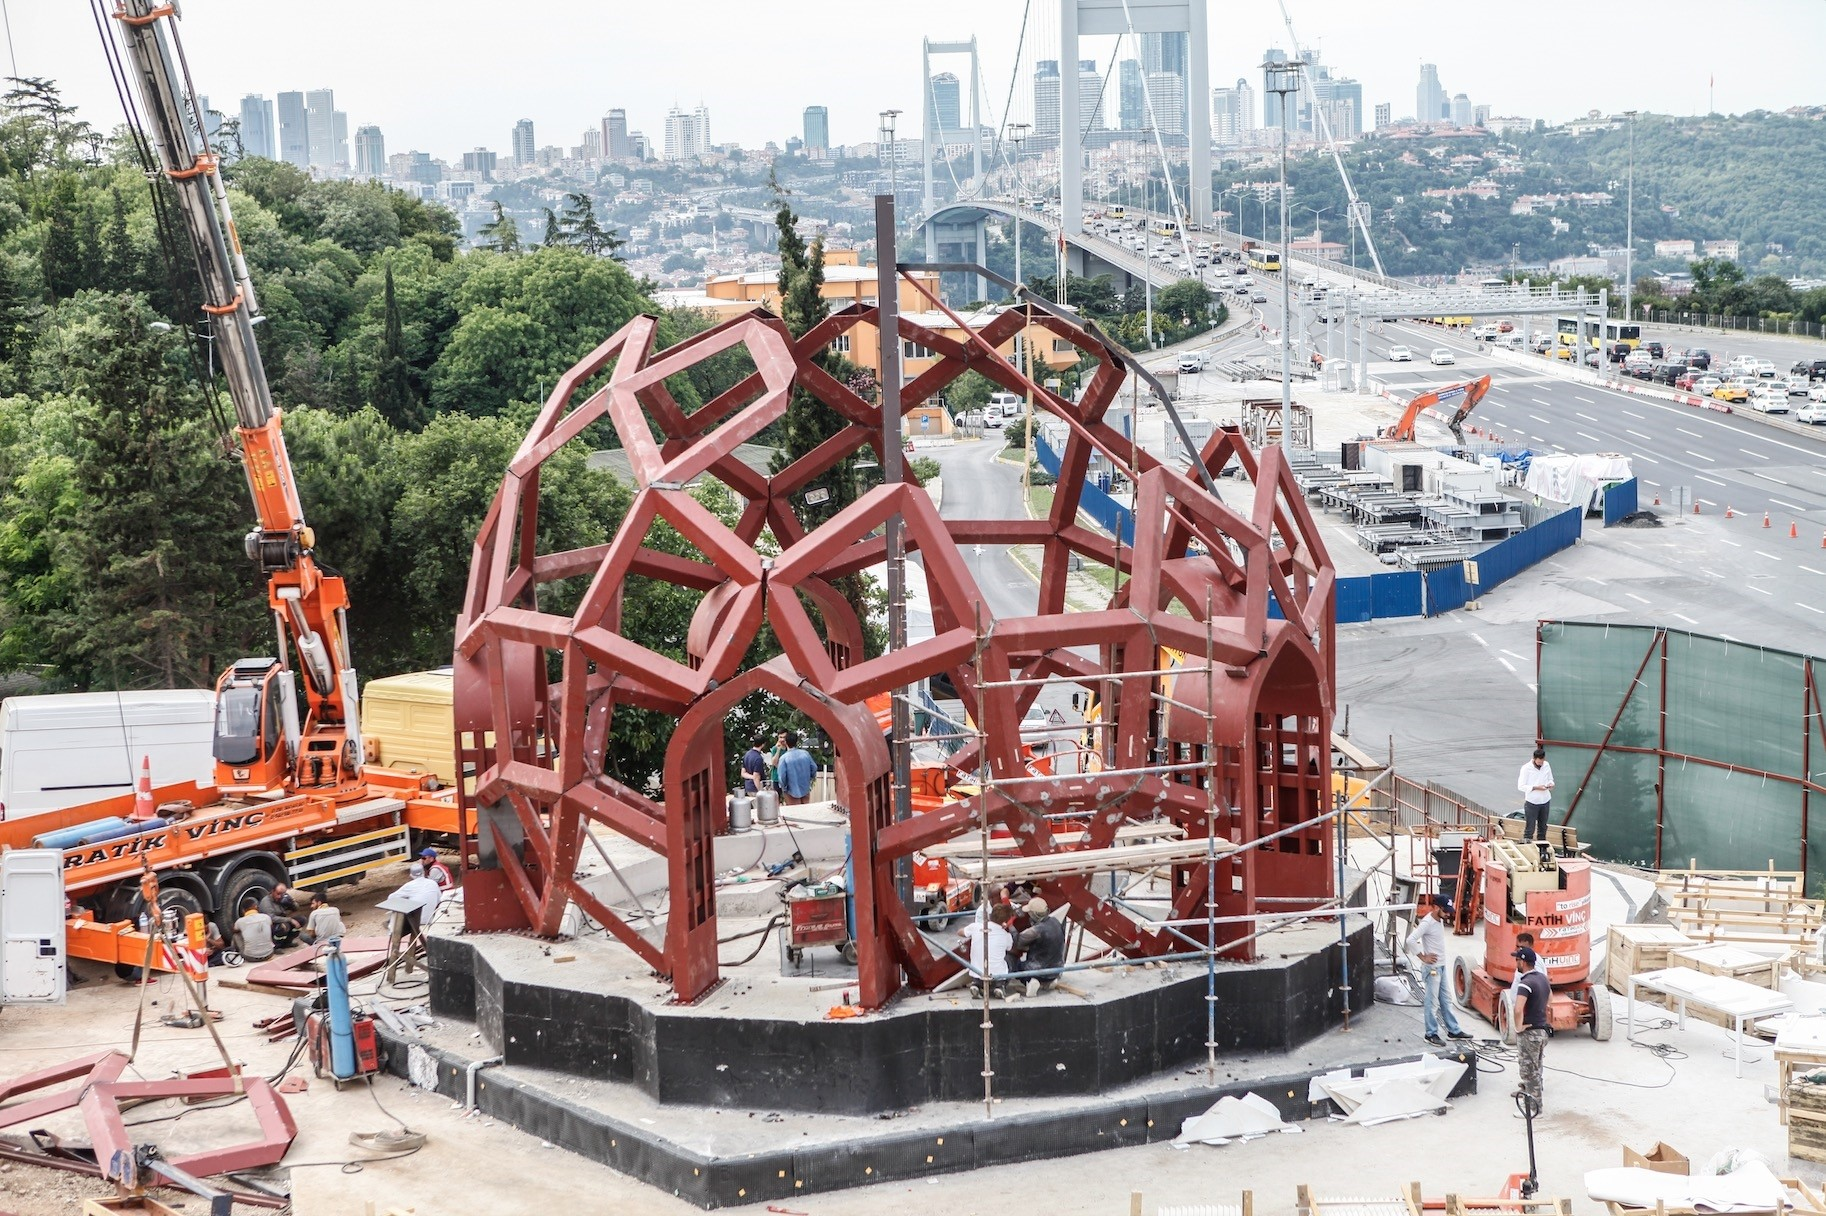 Workers put the final touches on the monument set to open on the first anniversary of the coup attempt.